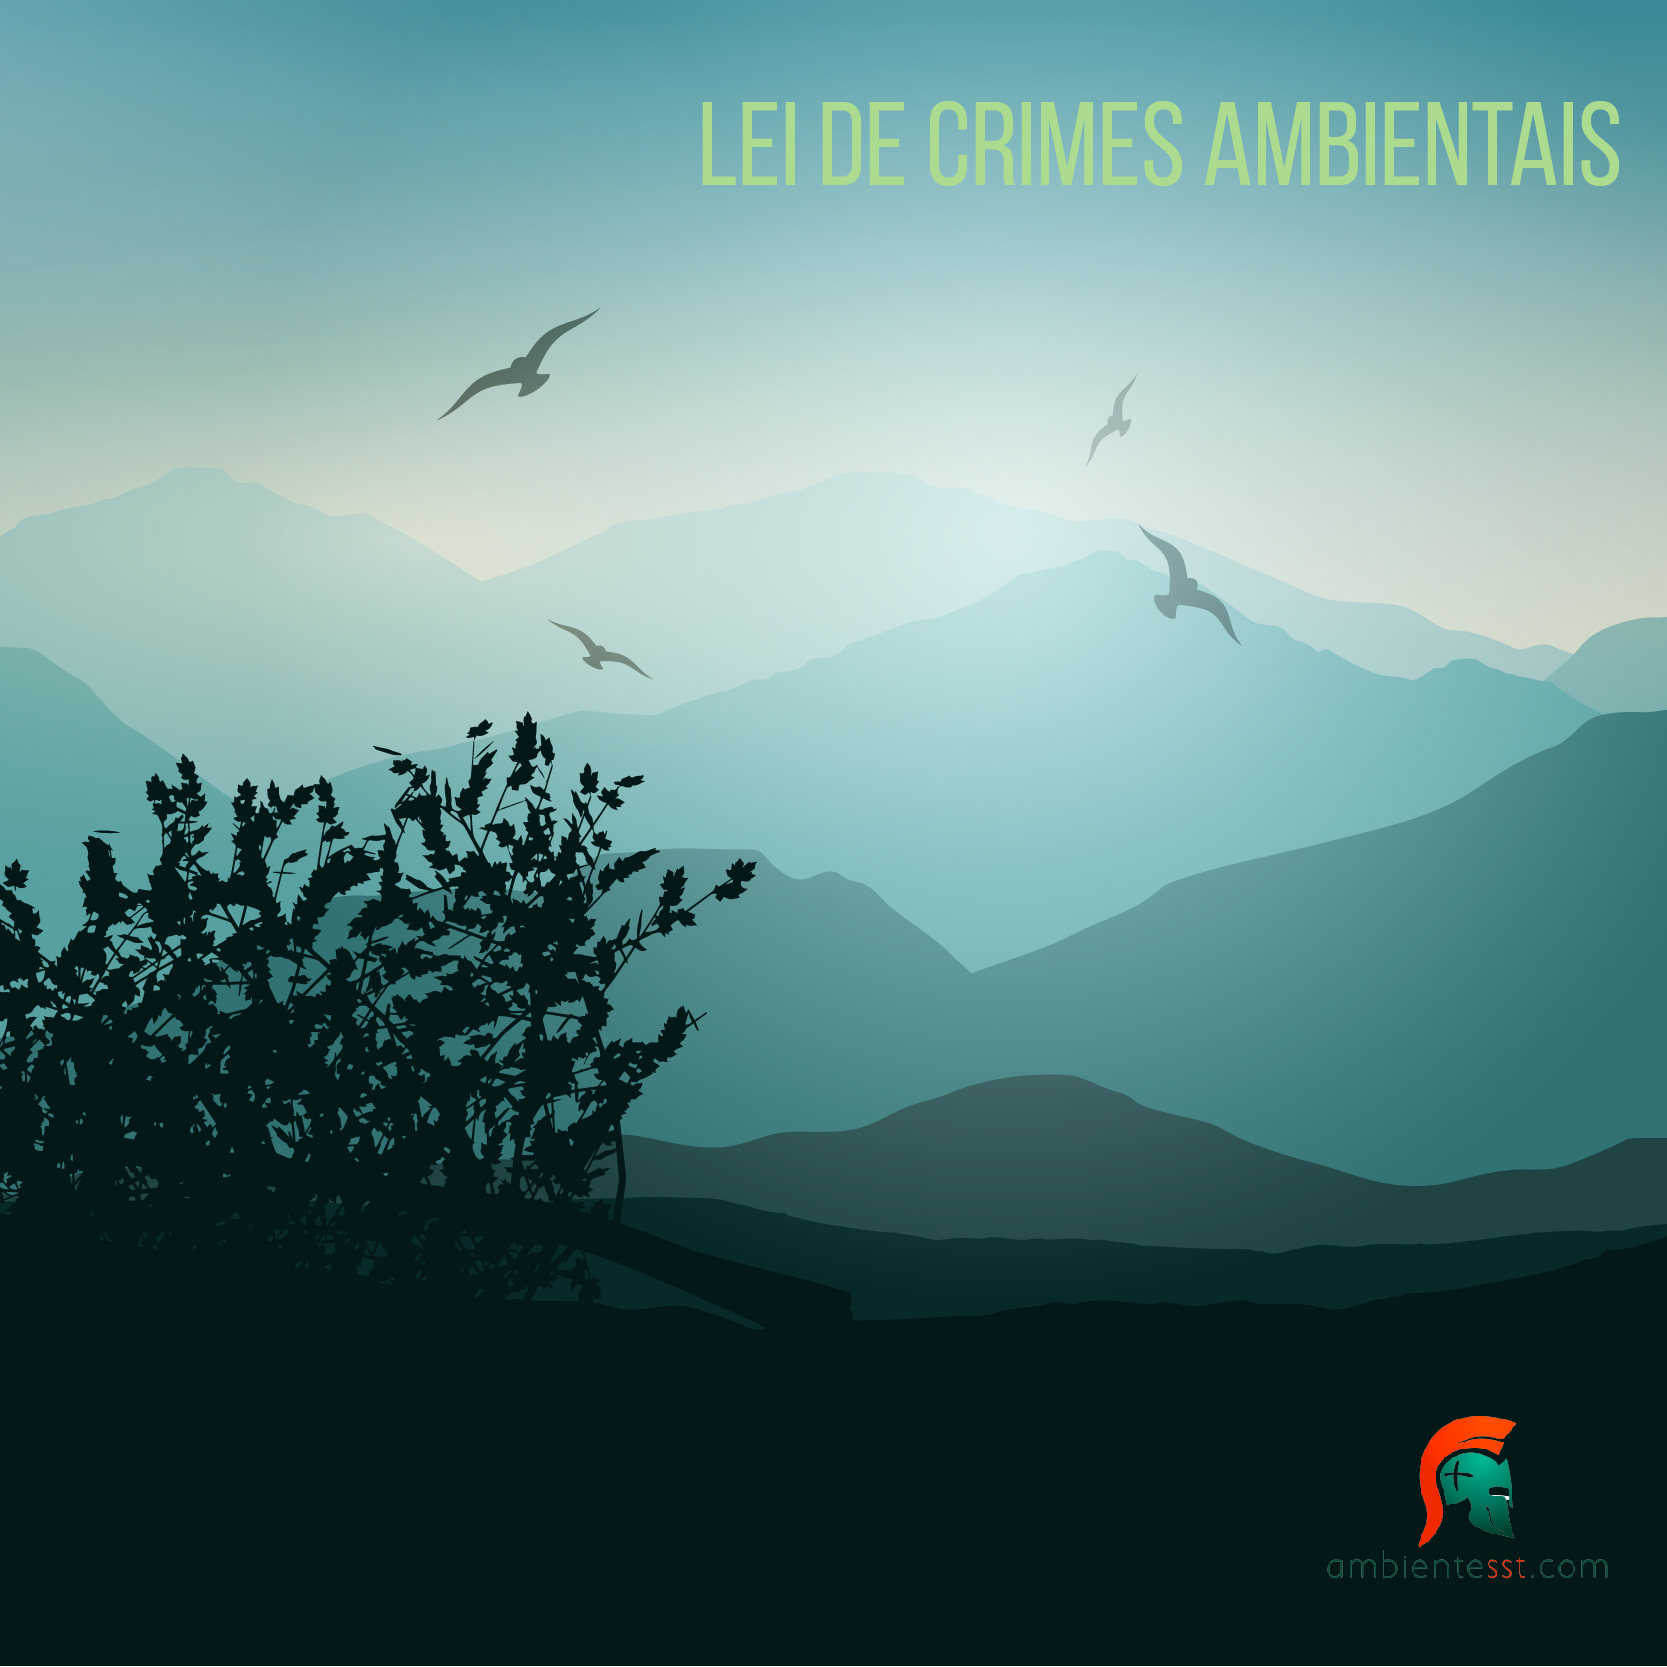 Lei 9605 – A lei de crimes ambientais